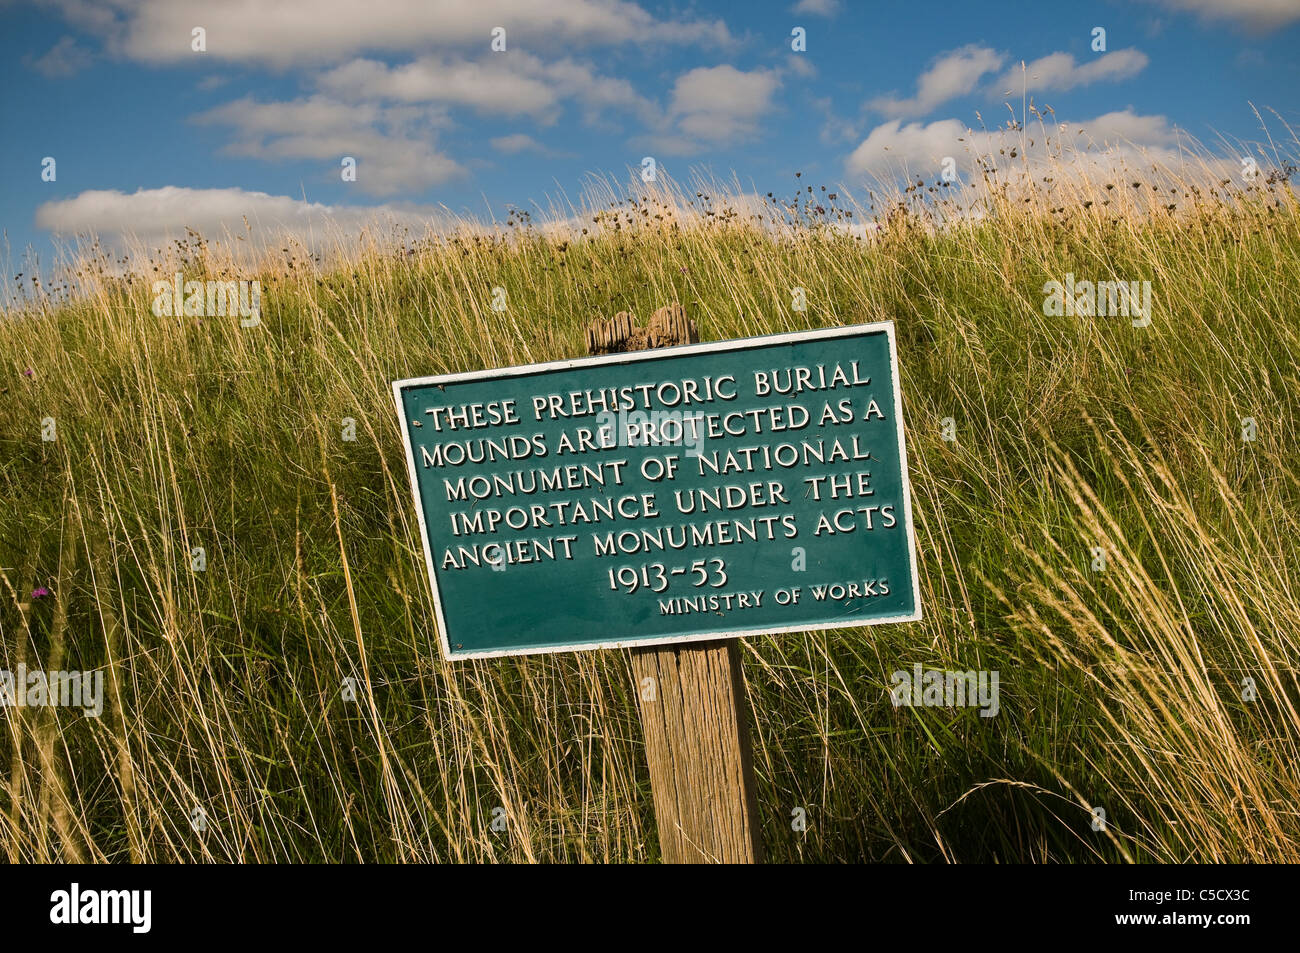 Ministry of Works sign at a prehistoric ancient monument site, Berkshire, UK Stock Photo